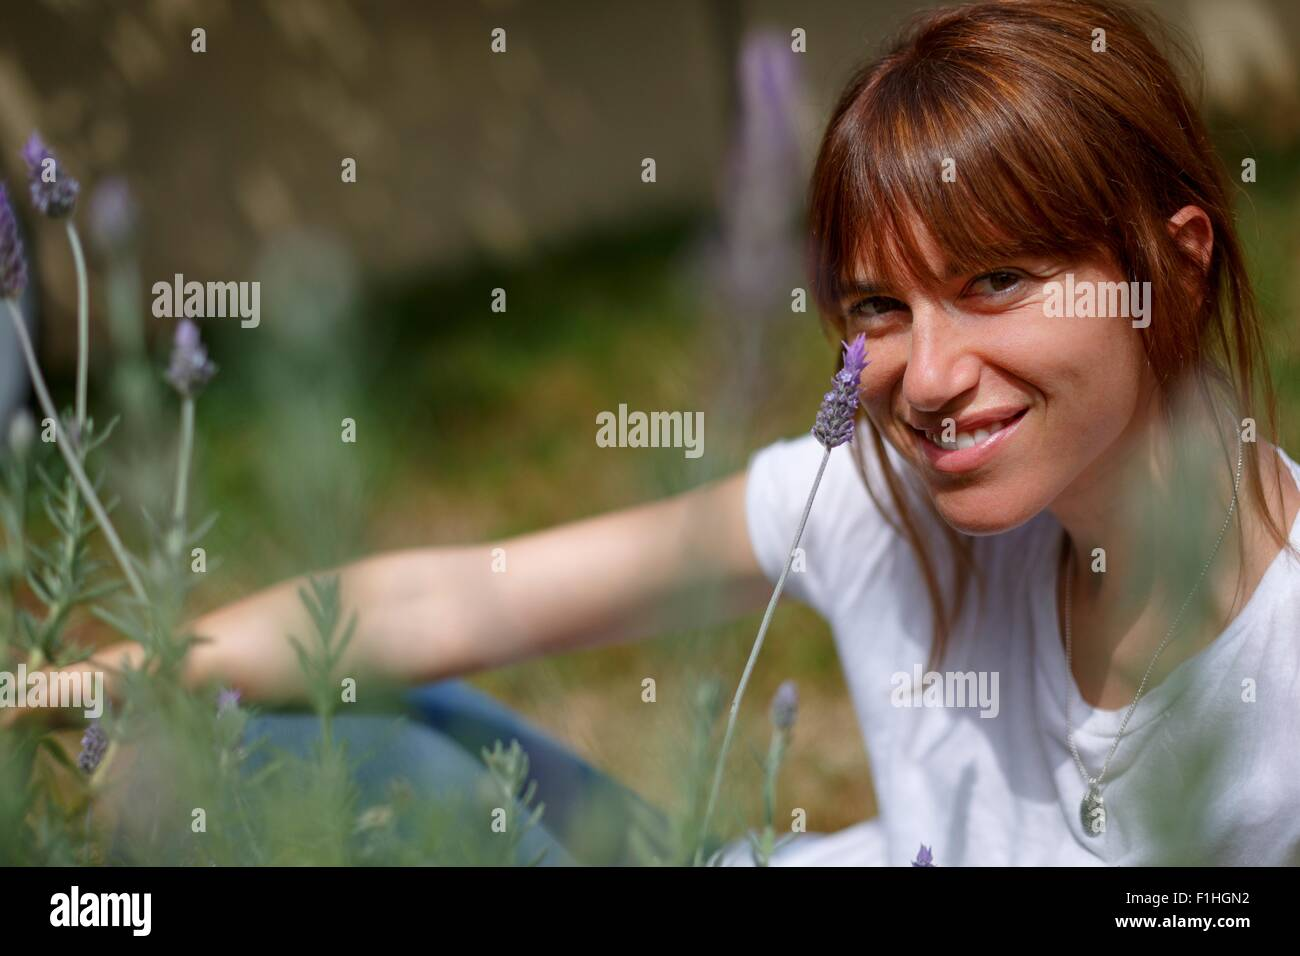 Mid adult woman sitting among lavender, looking at camera, smiling - Stock Image